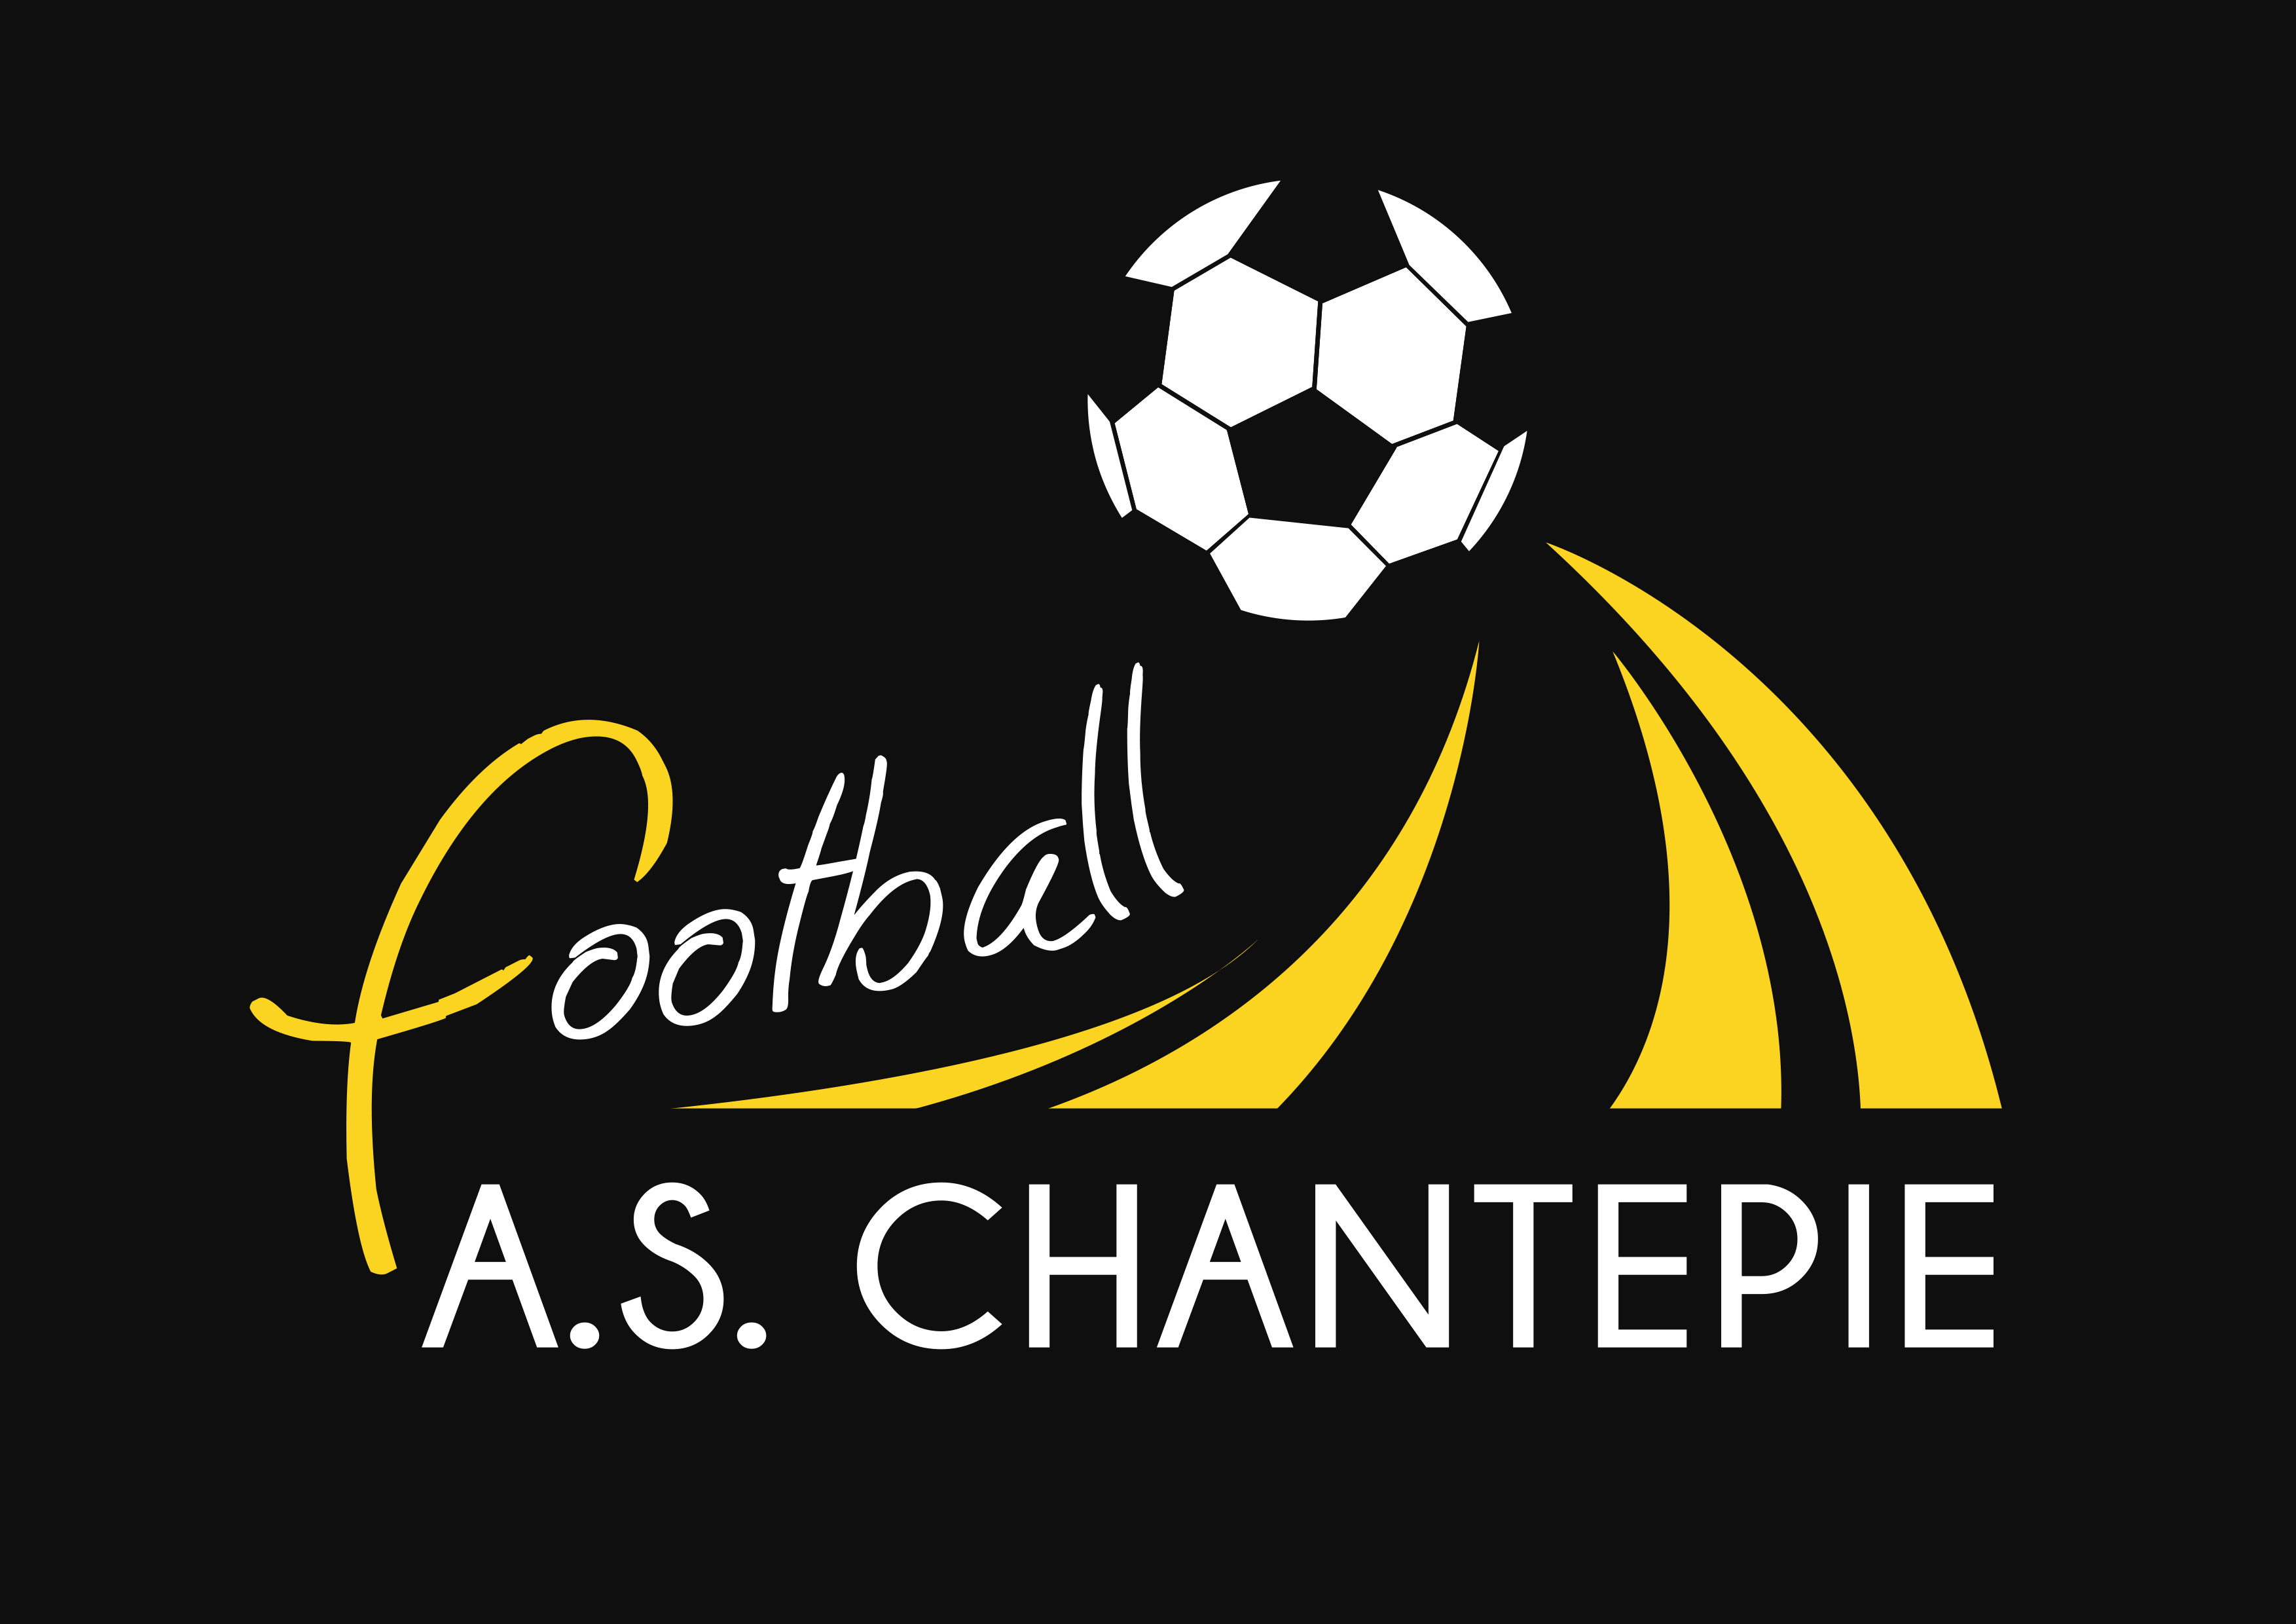 Logo AS CHANTEPIE FOOTBALL